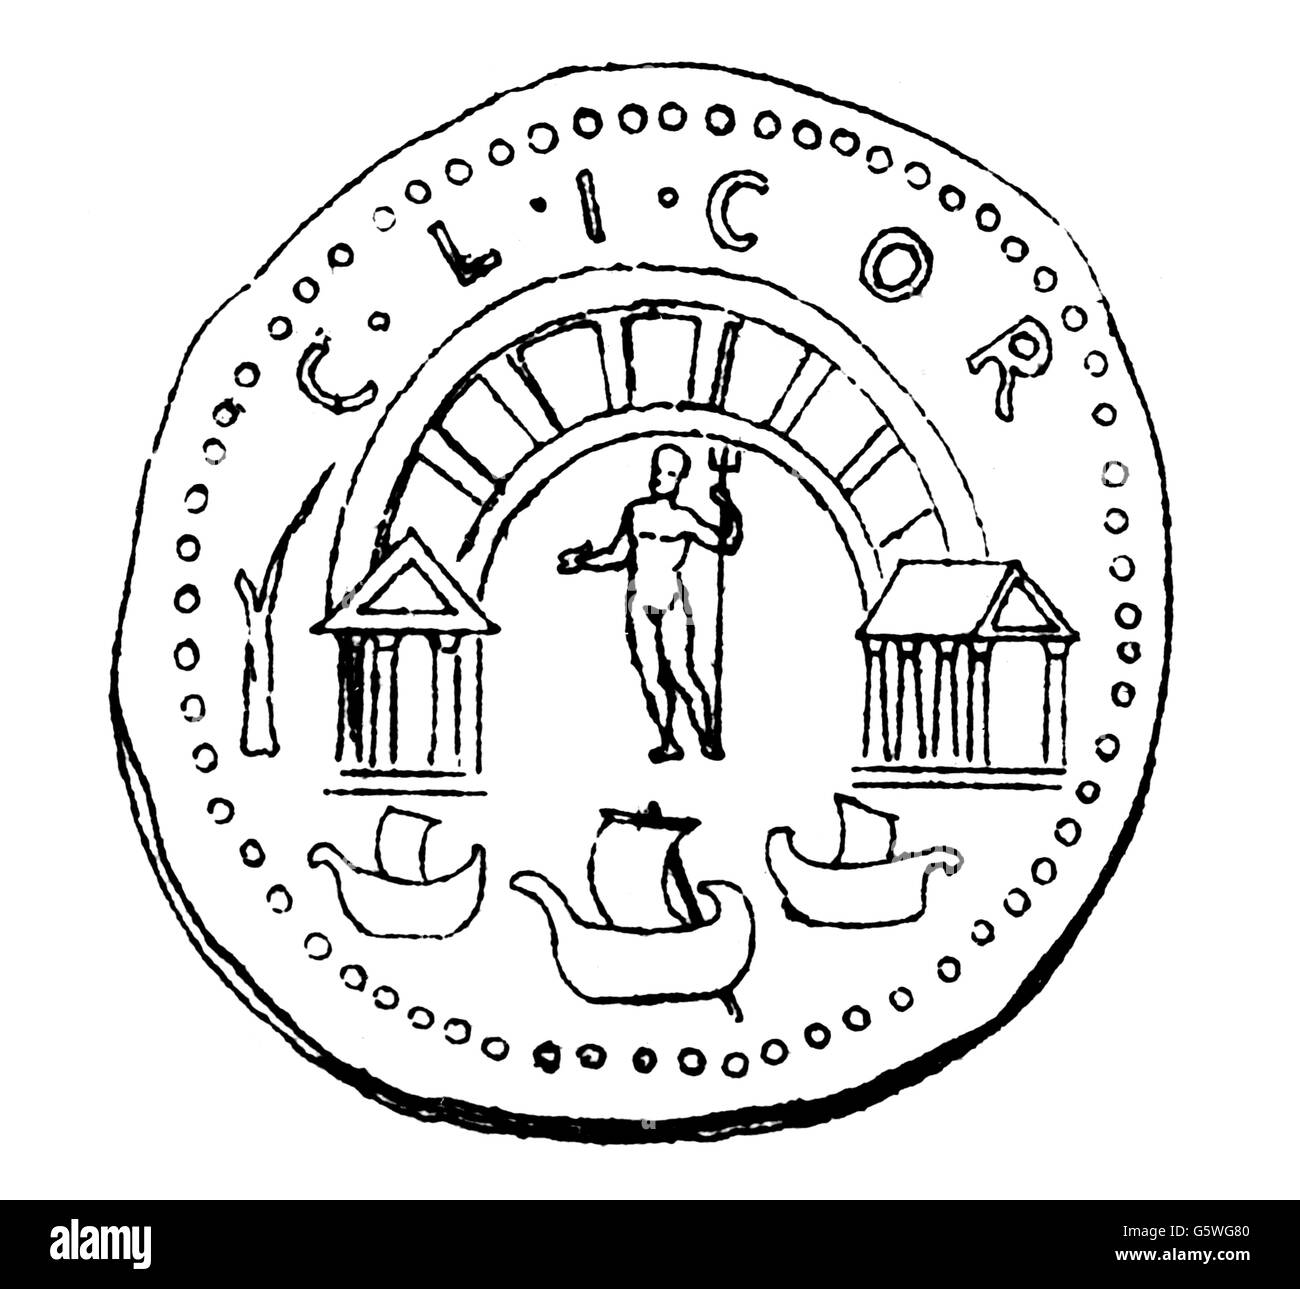 money / finances, coins, ancient world, Greece, coin with depiction of the harbour of Corinth, from Roman times, - Stock Image